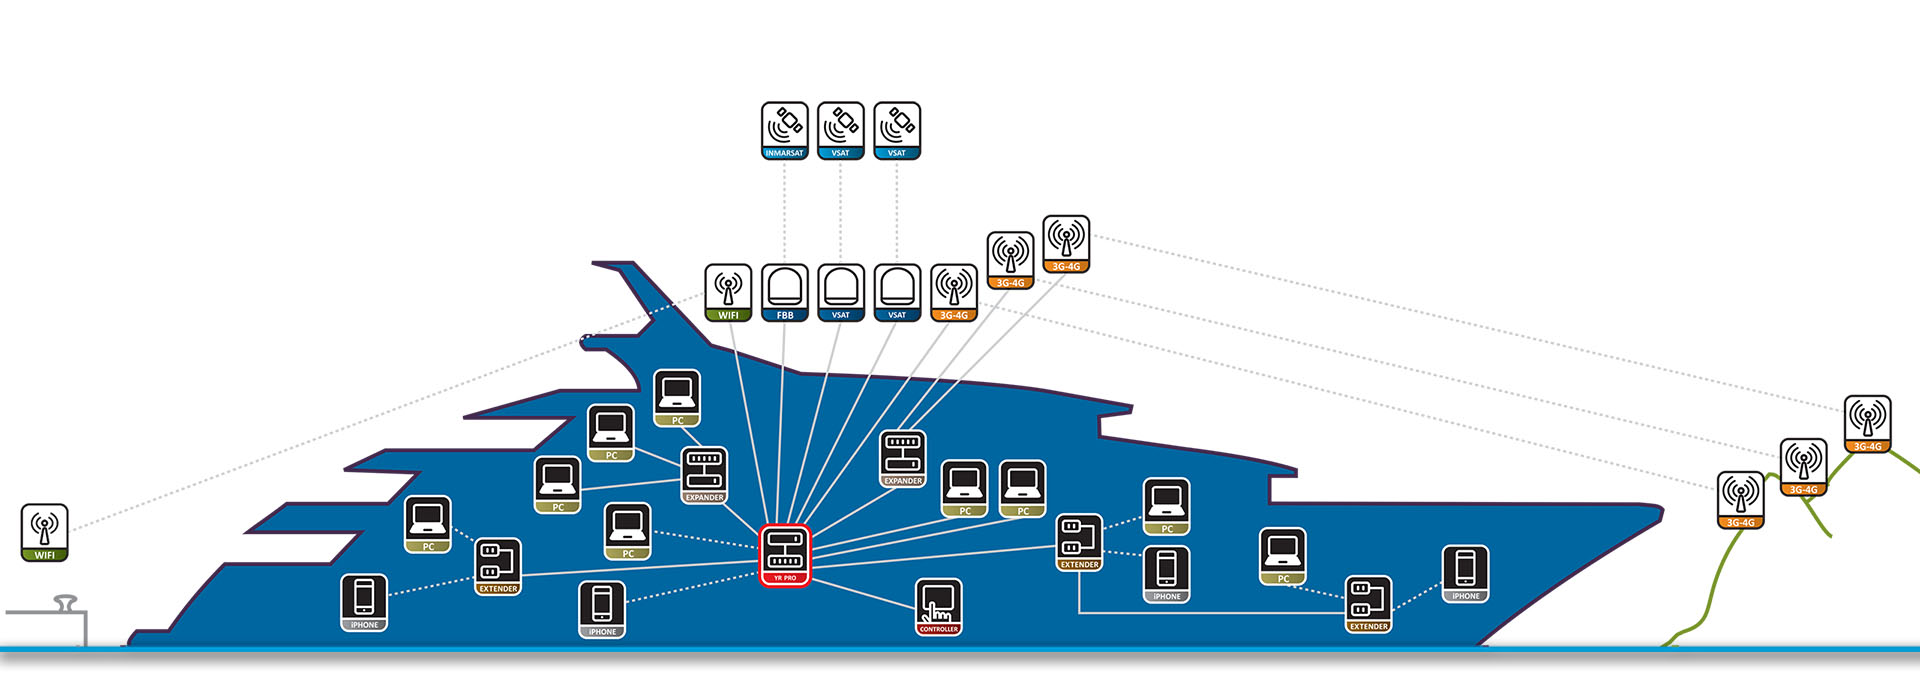 Locomarine – Yacht Router – Yacht Router is a complete